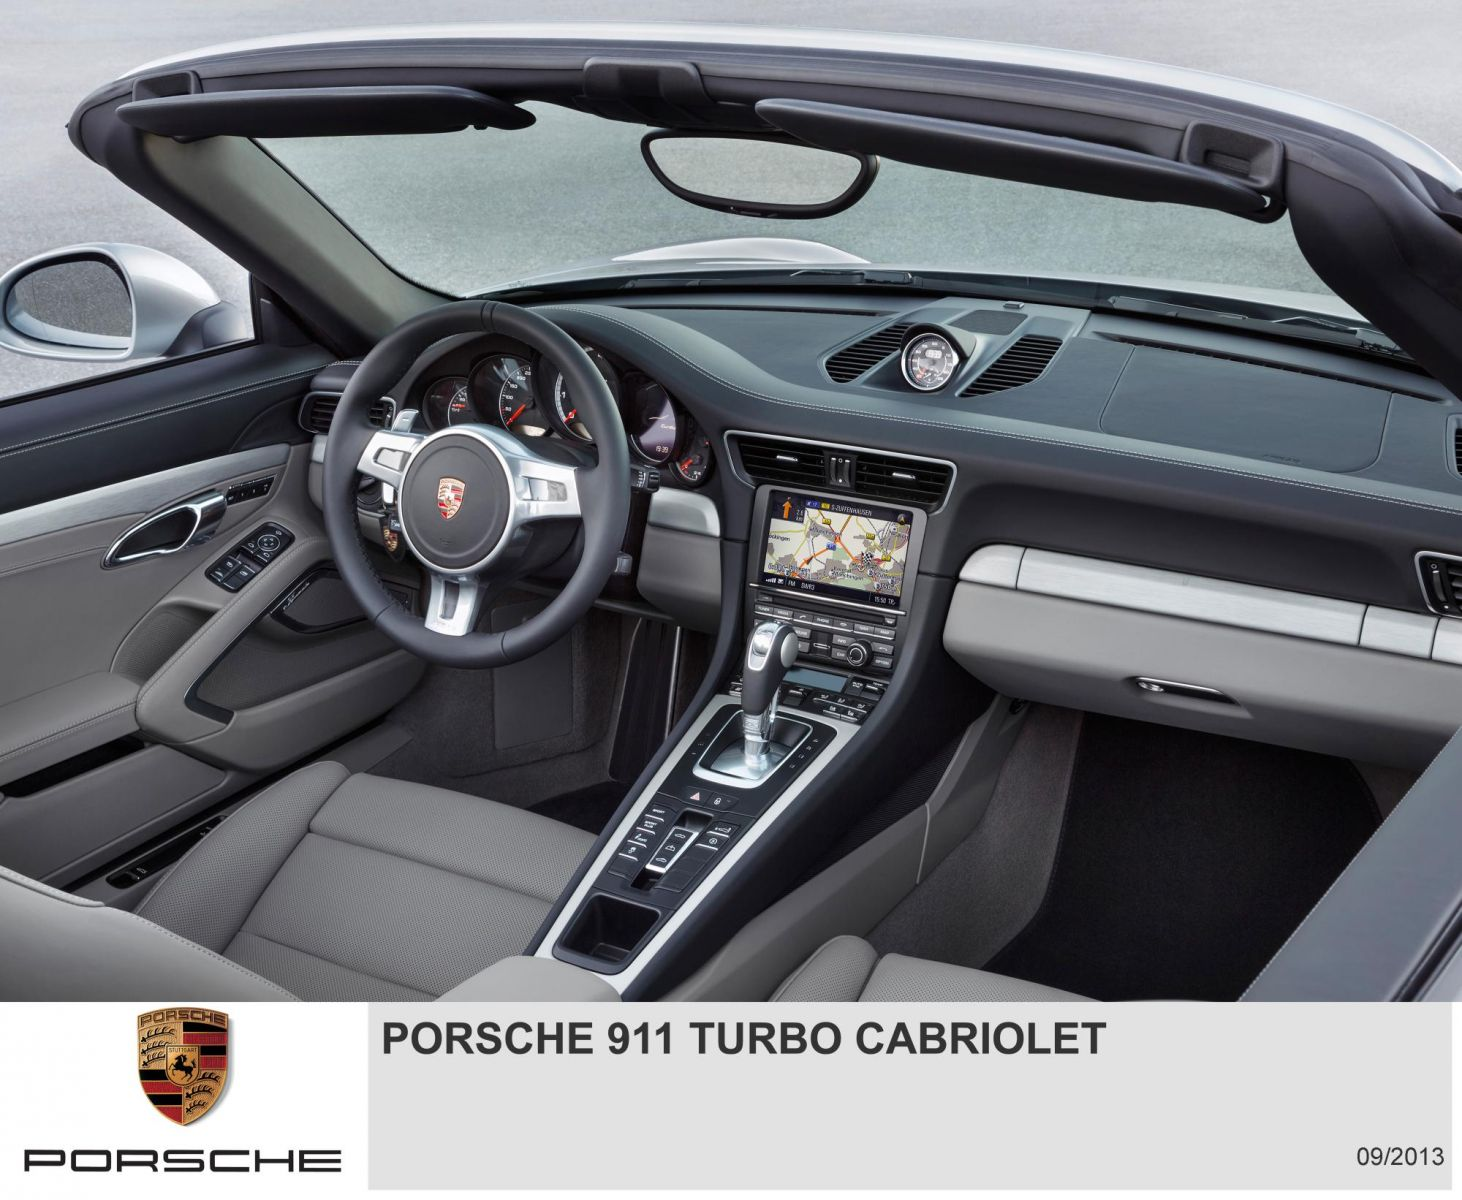 Porsche 911 Turbo Cabriolet - Interior